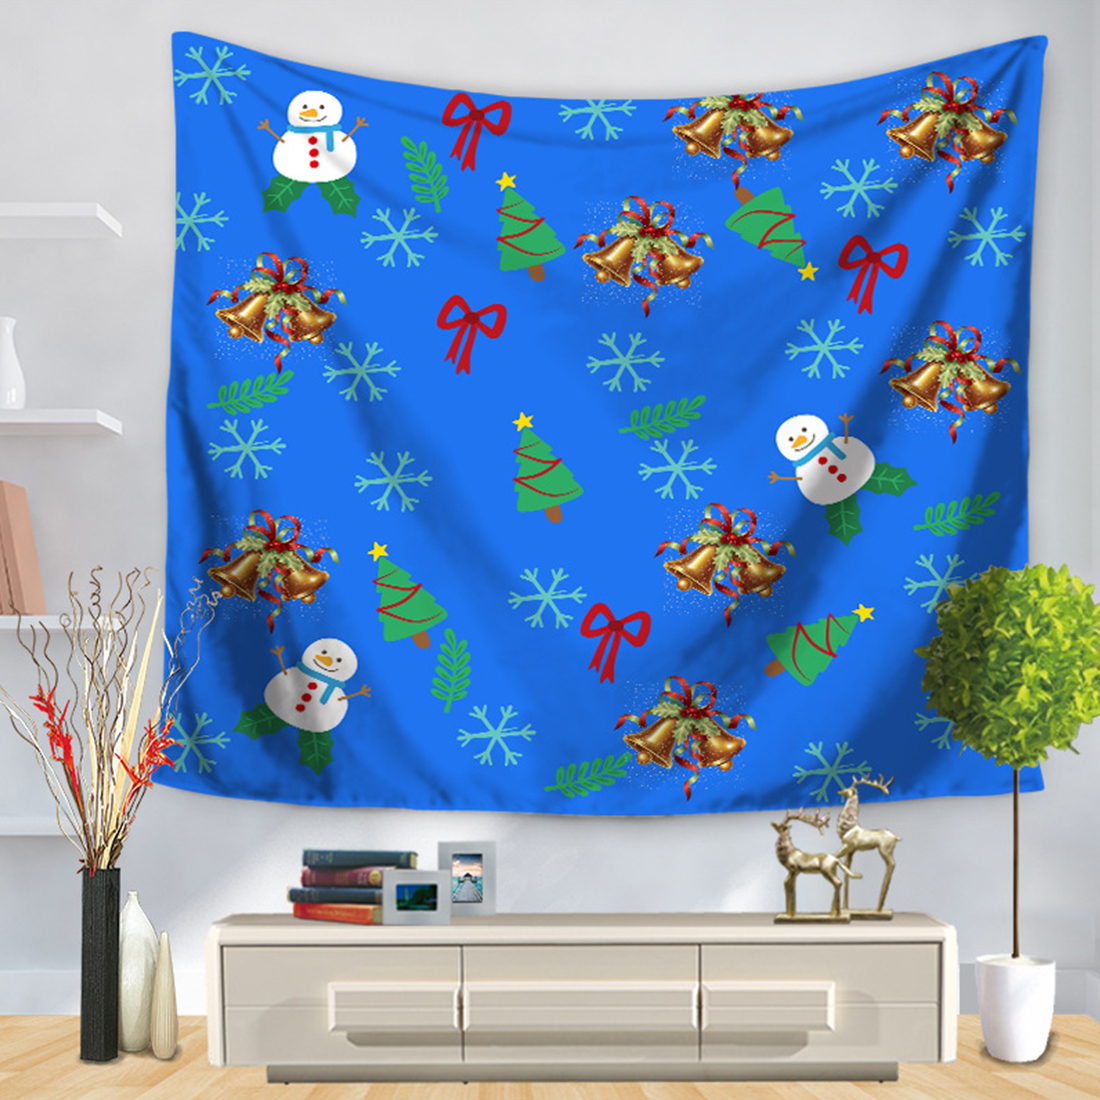 7 types New Beach Towel Santa Claus Wall Tapestry Home Decorations Wall Hanging Tapestries for Home decoration